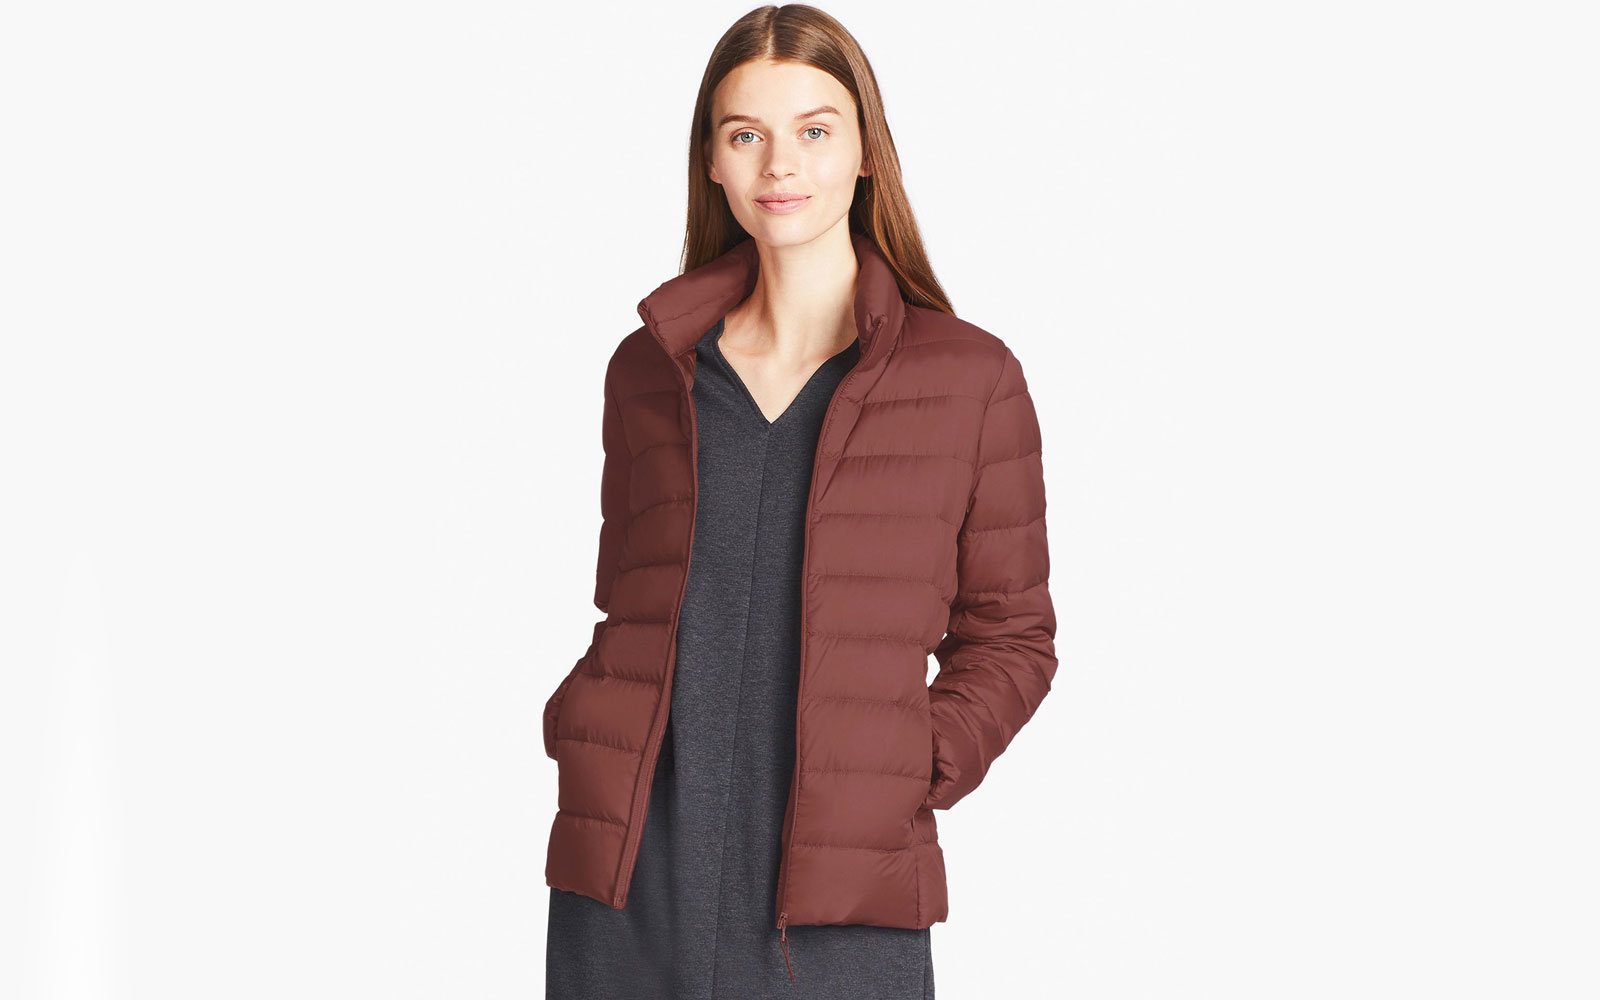 f91793eaf06 The Best Winter Coats Under $100 | Travel + Leisure